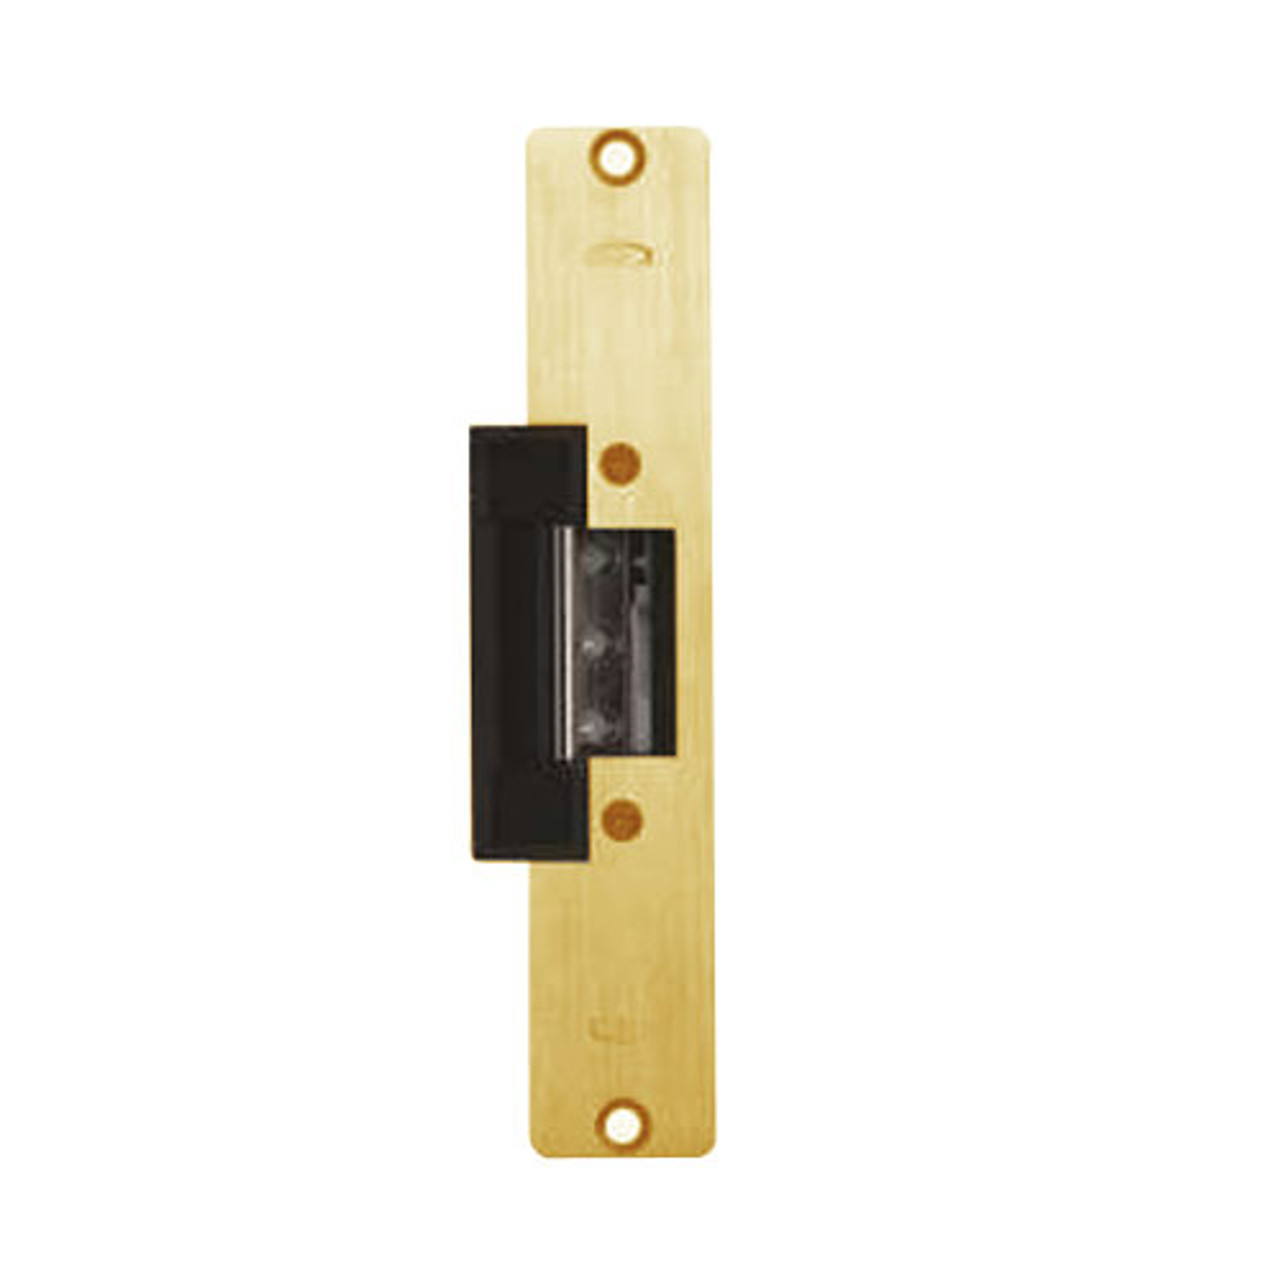 2678-RS-US10-24DC Trine Light Commercial Adjustable 2000 Series Fail Safe Electric Strikes in Satin Bronze Finish